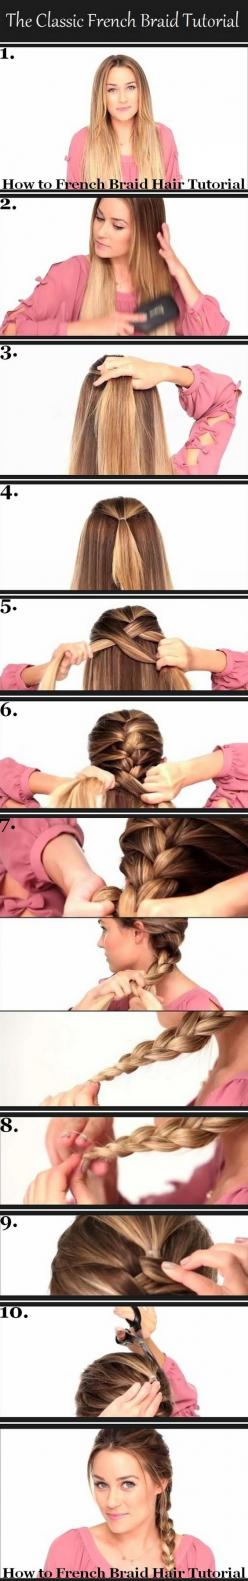 When I see this tutorial all I can think about is accidentally cutting off all my hair. If DIE.hairstyle ideas,ladies hairstyles,short hairstyles for women,hairstyles for thick hair,hairstyles for women,short hairstyles,modern hairstyles,hairstyles for fi